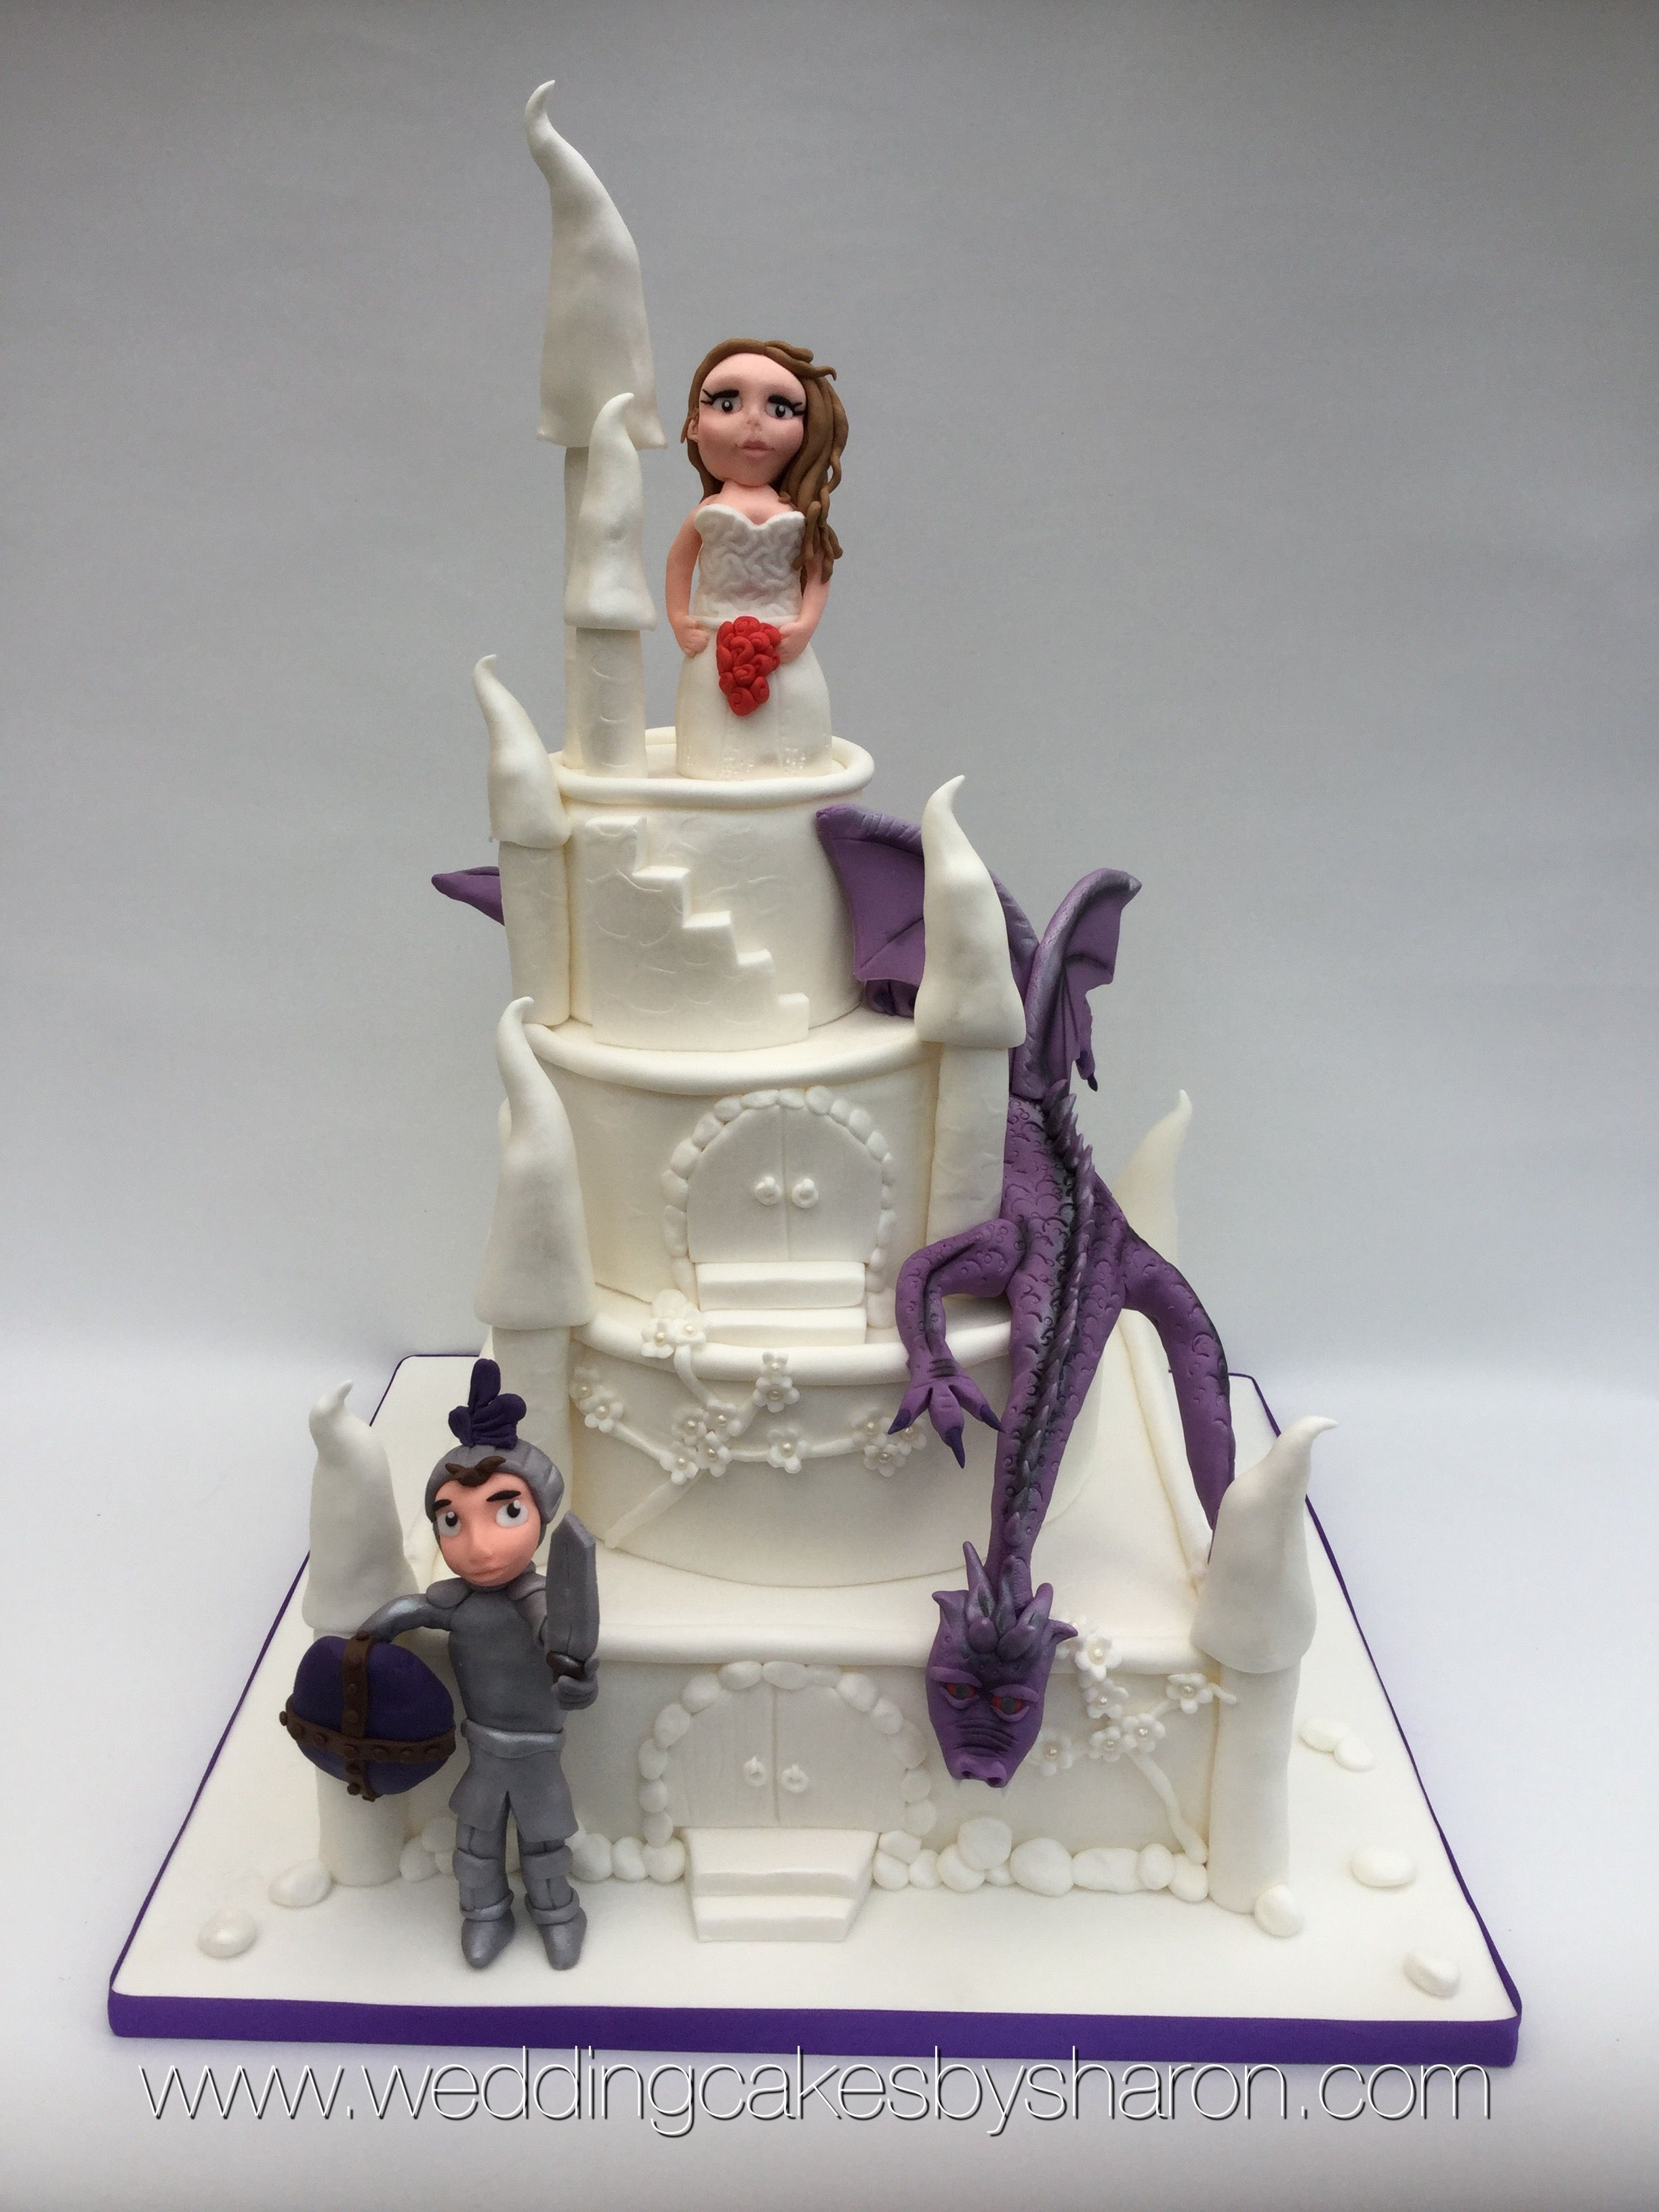 white castle wedding cake with bride groom and a ferocious dragon